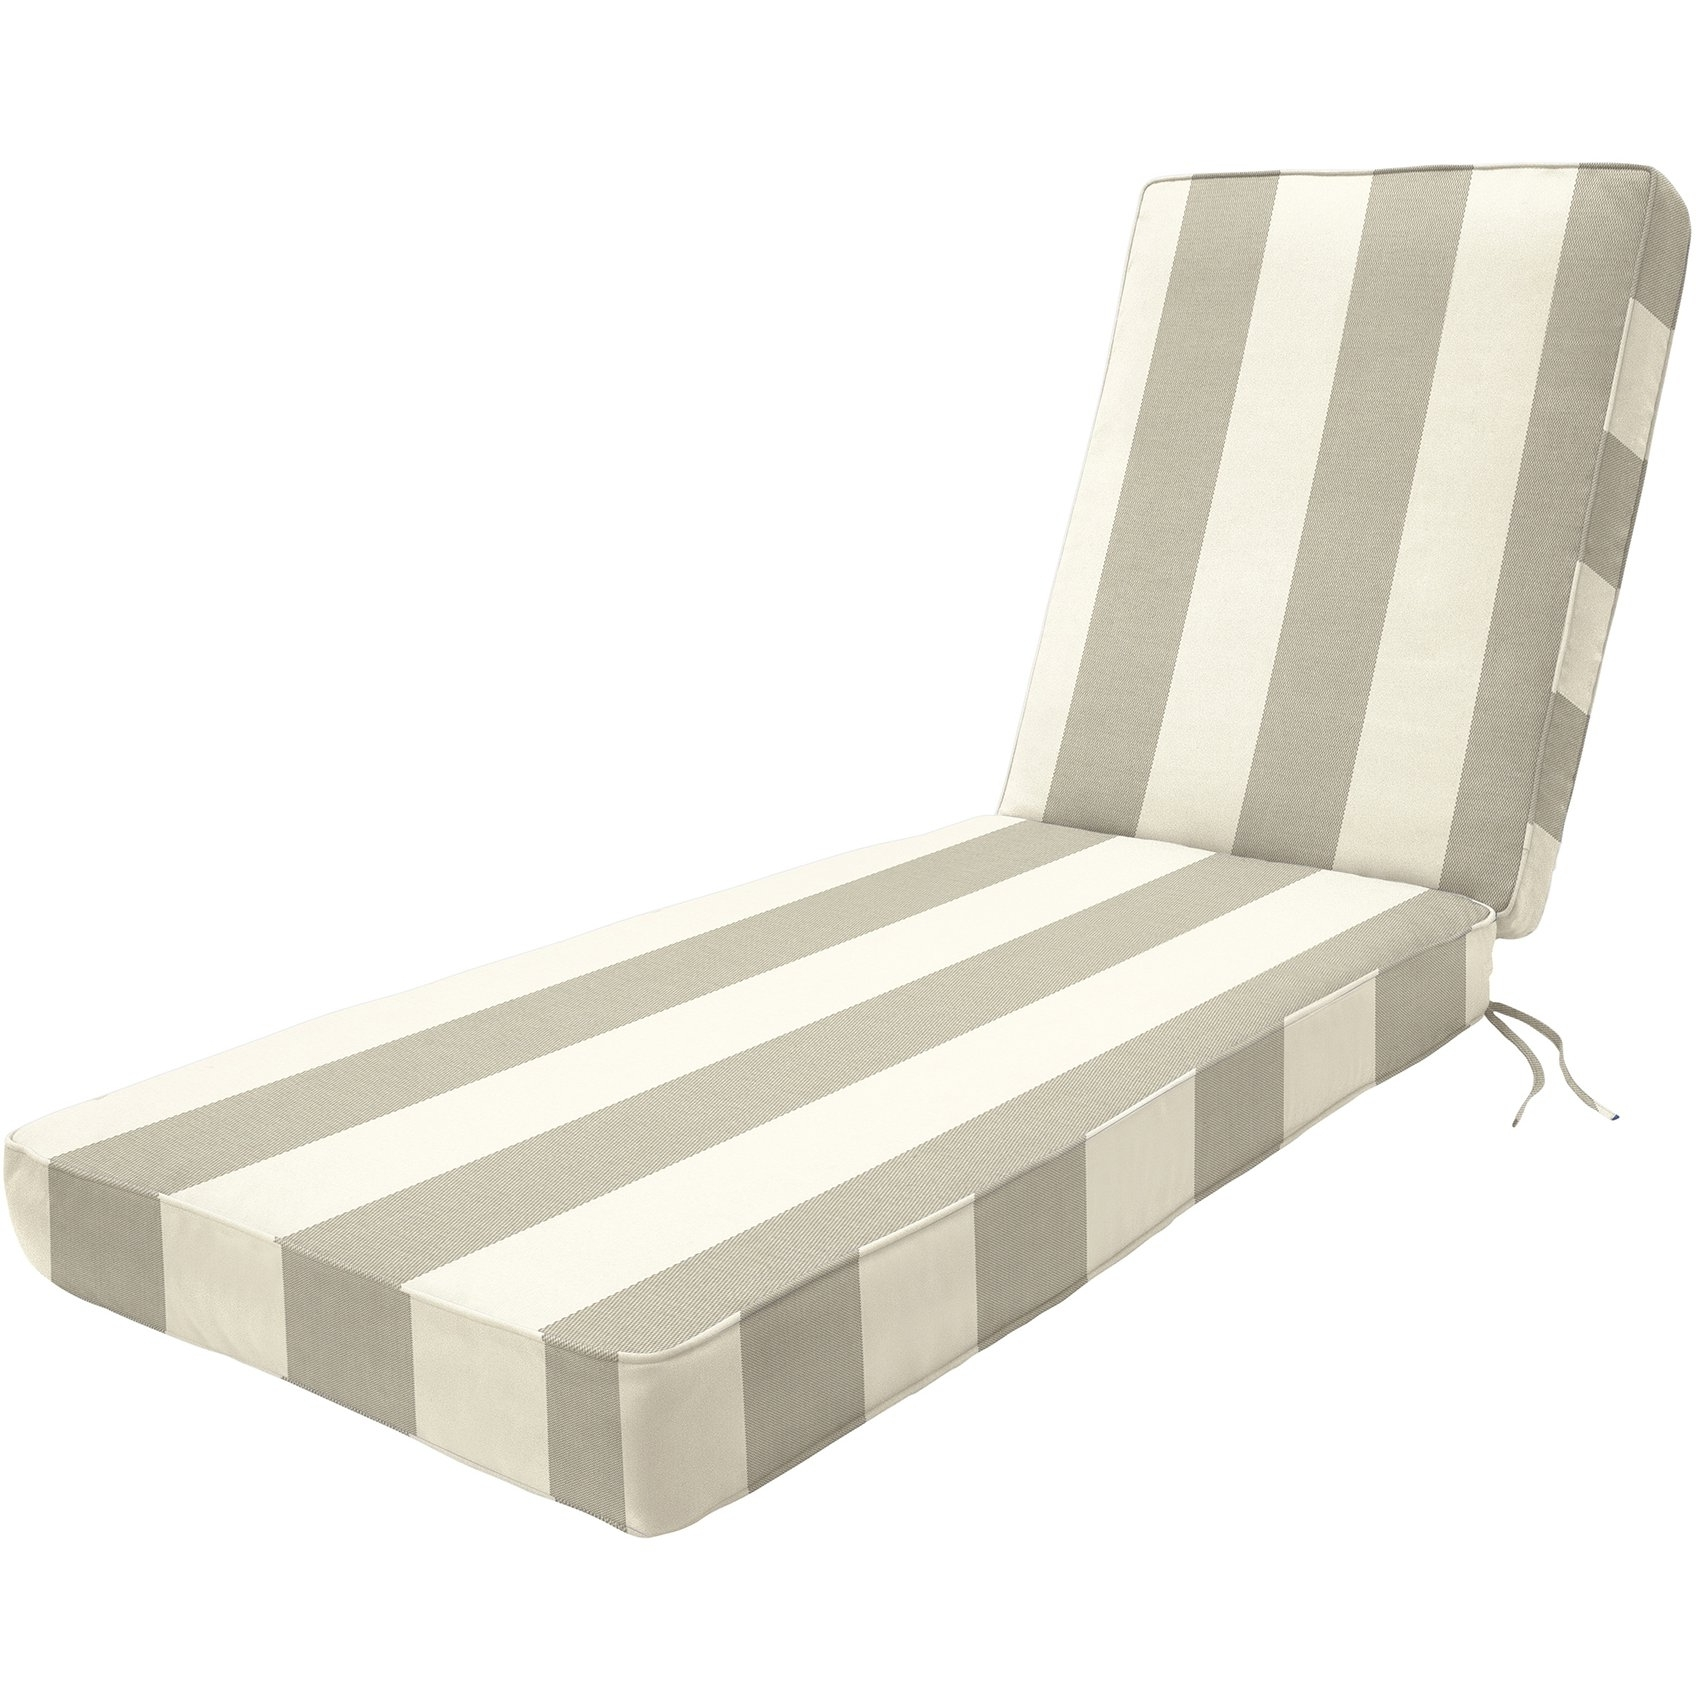 in lounge cushions chaise x cushion on best sale outdoor polywood sunbrella with